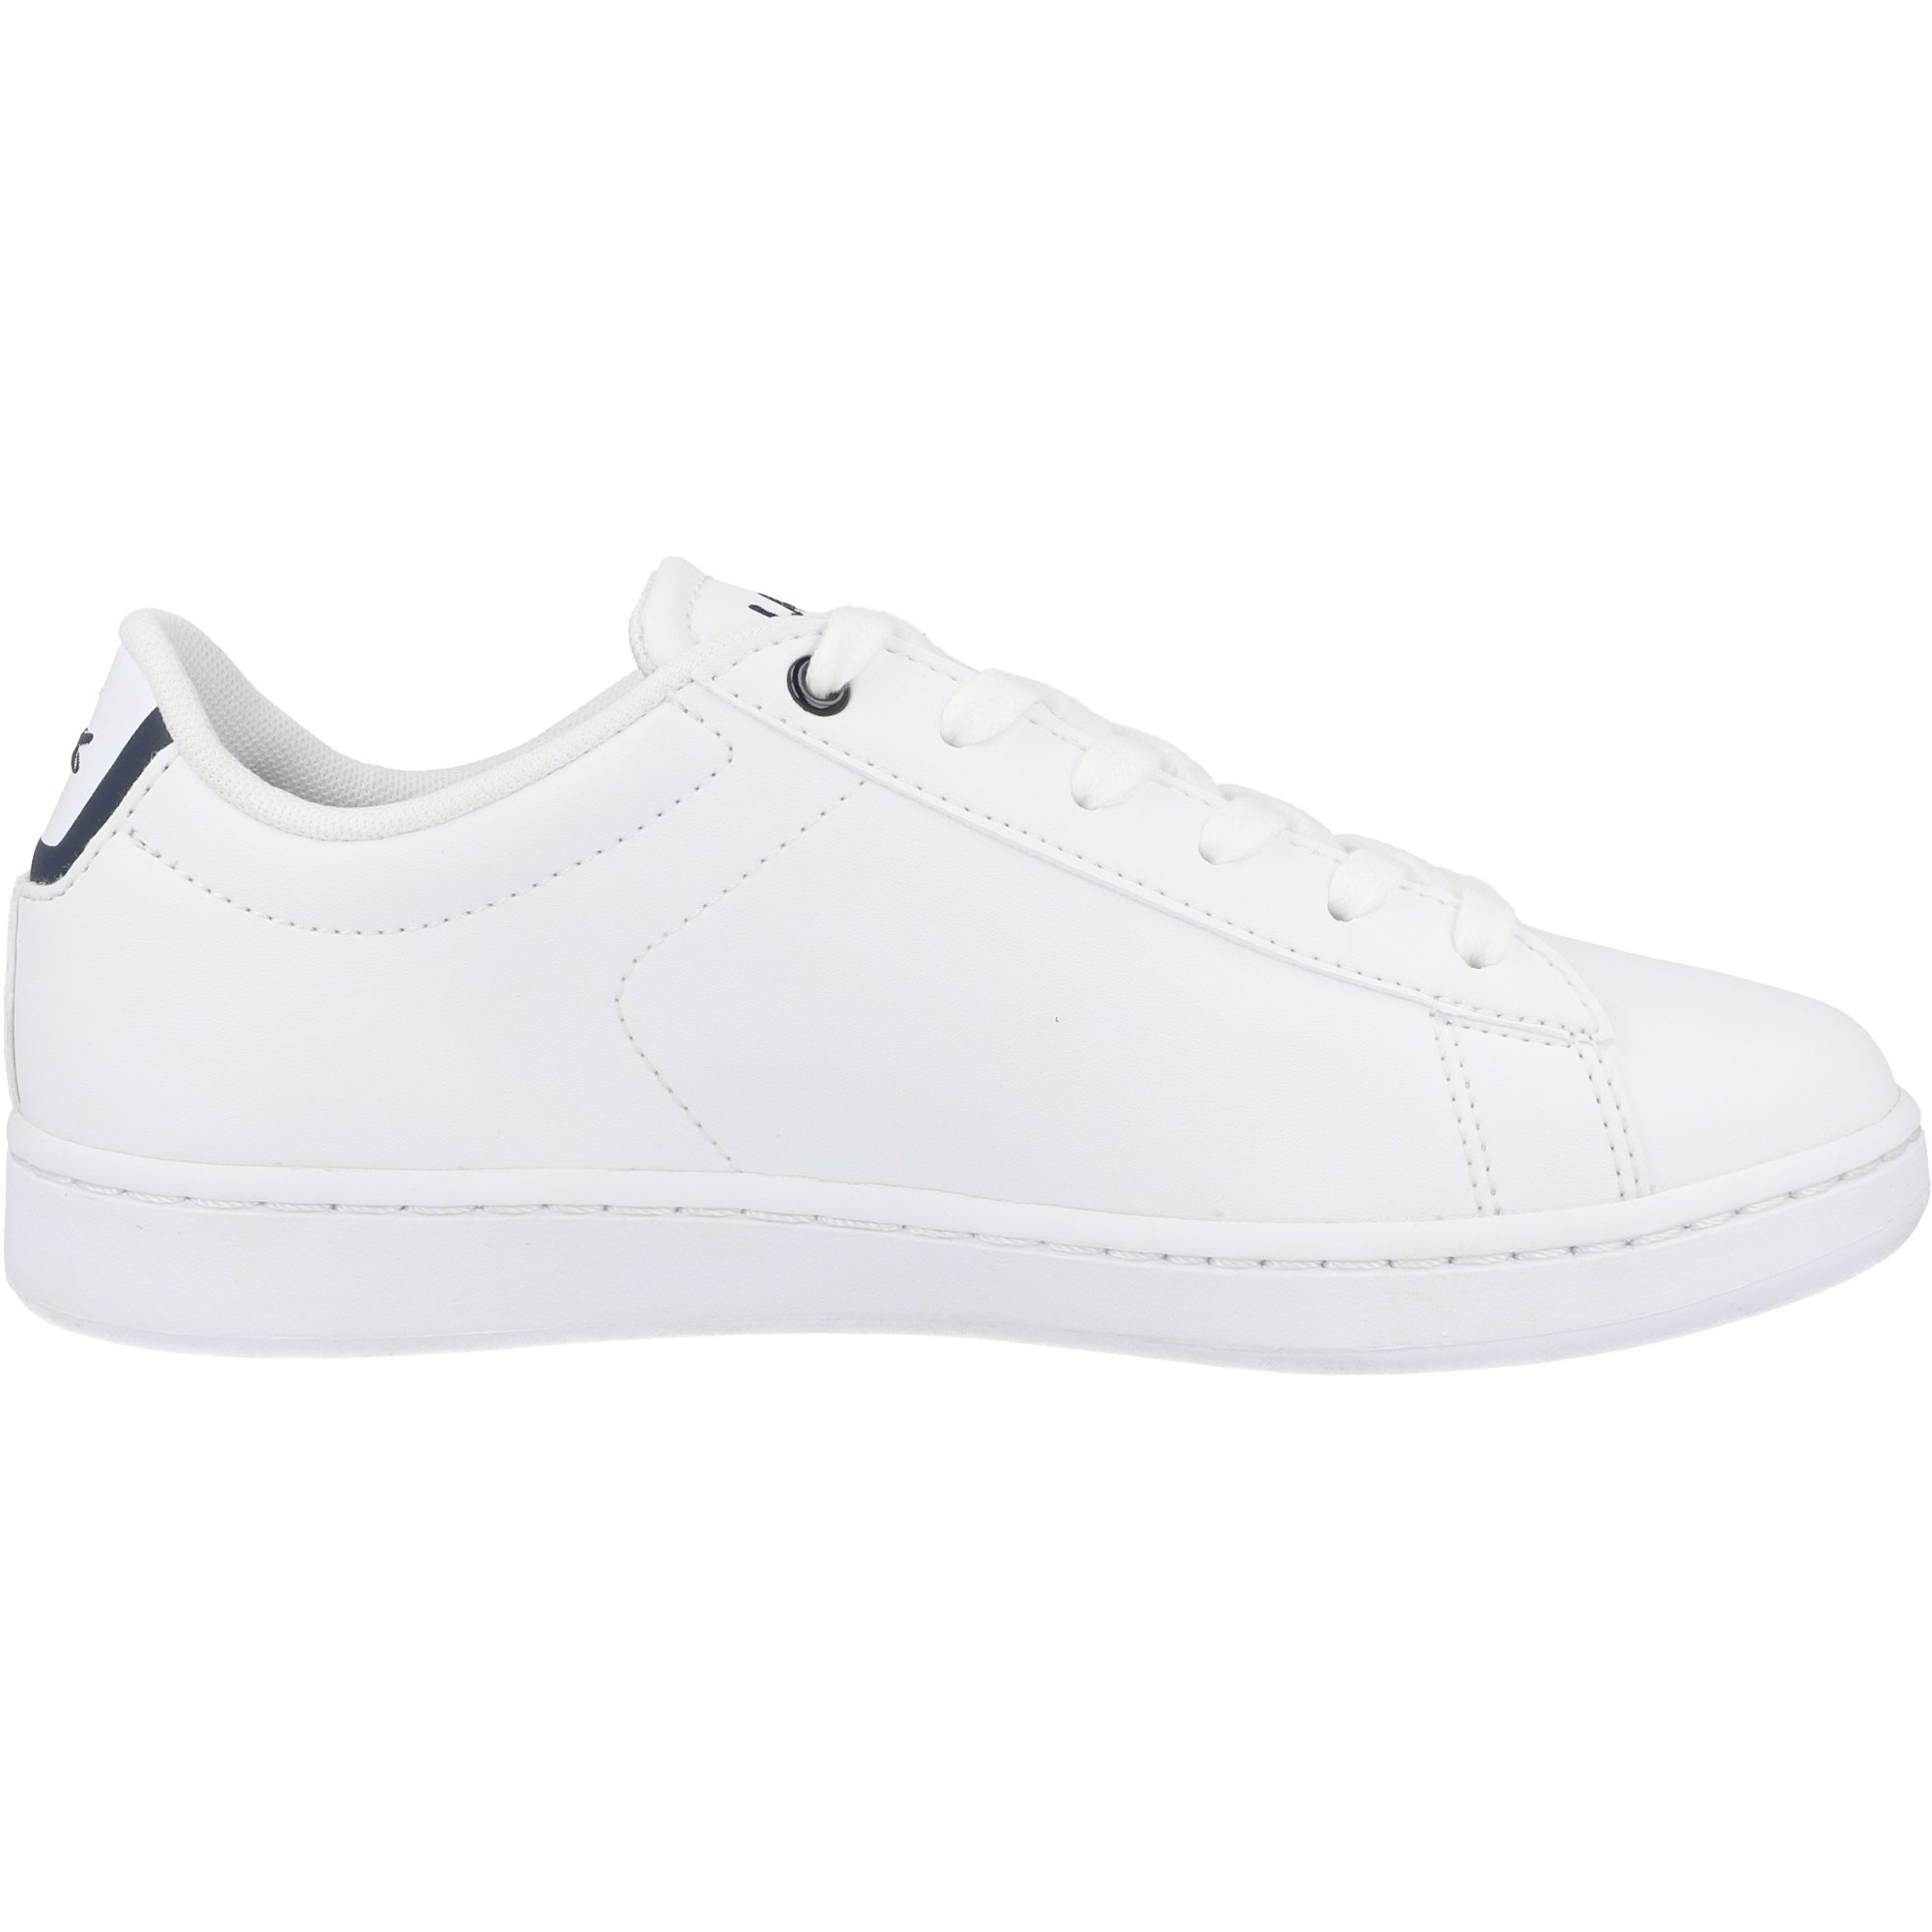 Lacoste Carnaby Evo BL 1 White/Navy Synthetic